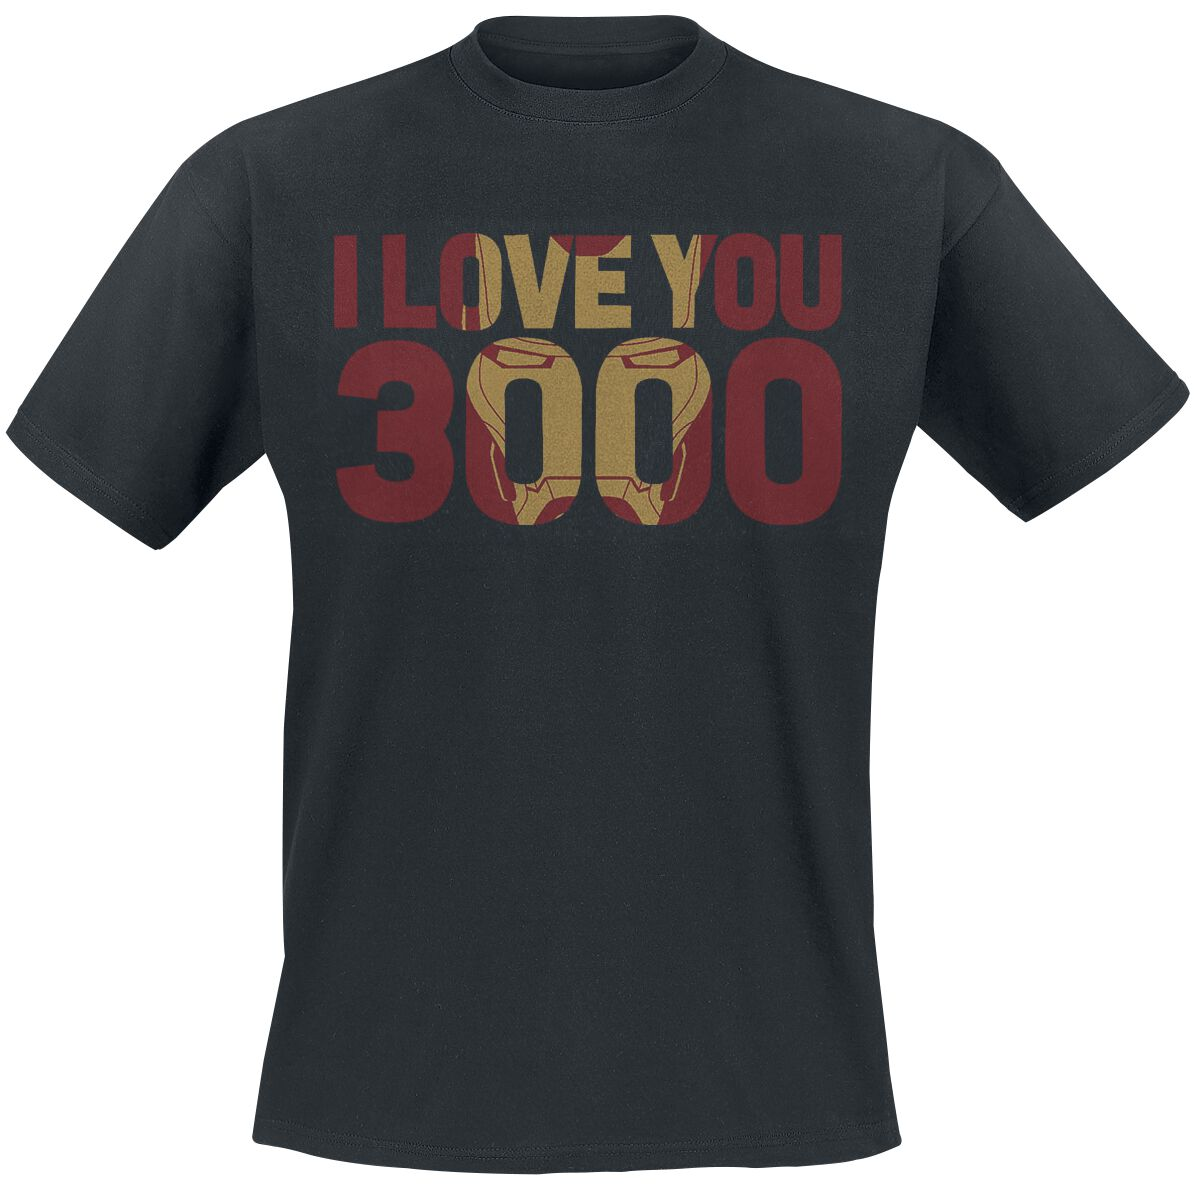 Avengers Endgame - I Love You 3000 powered by EMP